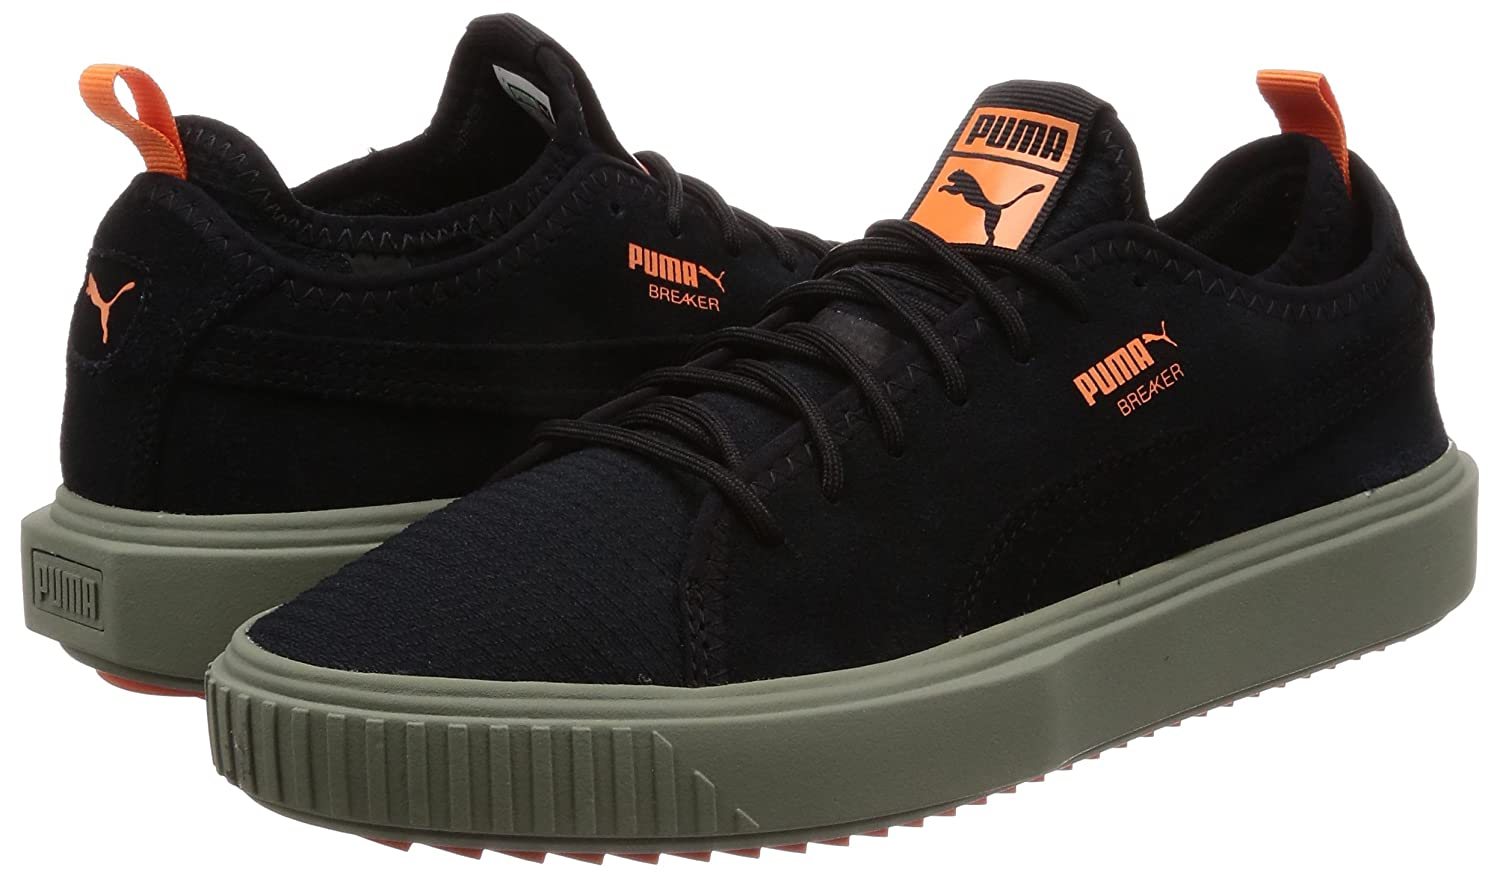 Puma Breaker Men s Black Mesh Shoes -43  Buy Online at Low Prices in India  - Amazon.in a0ae9ec4a